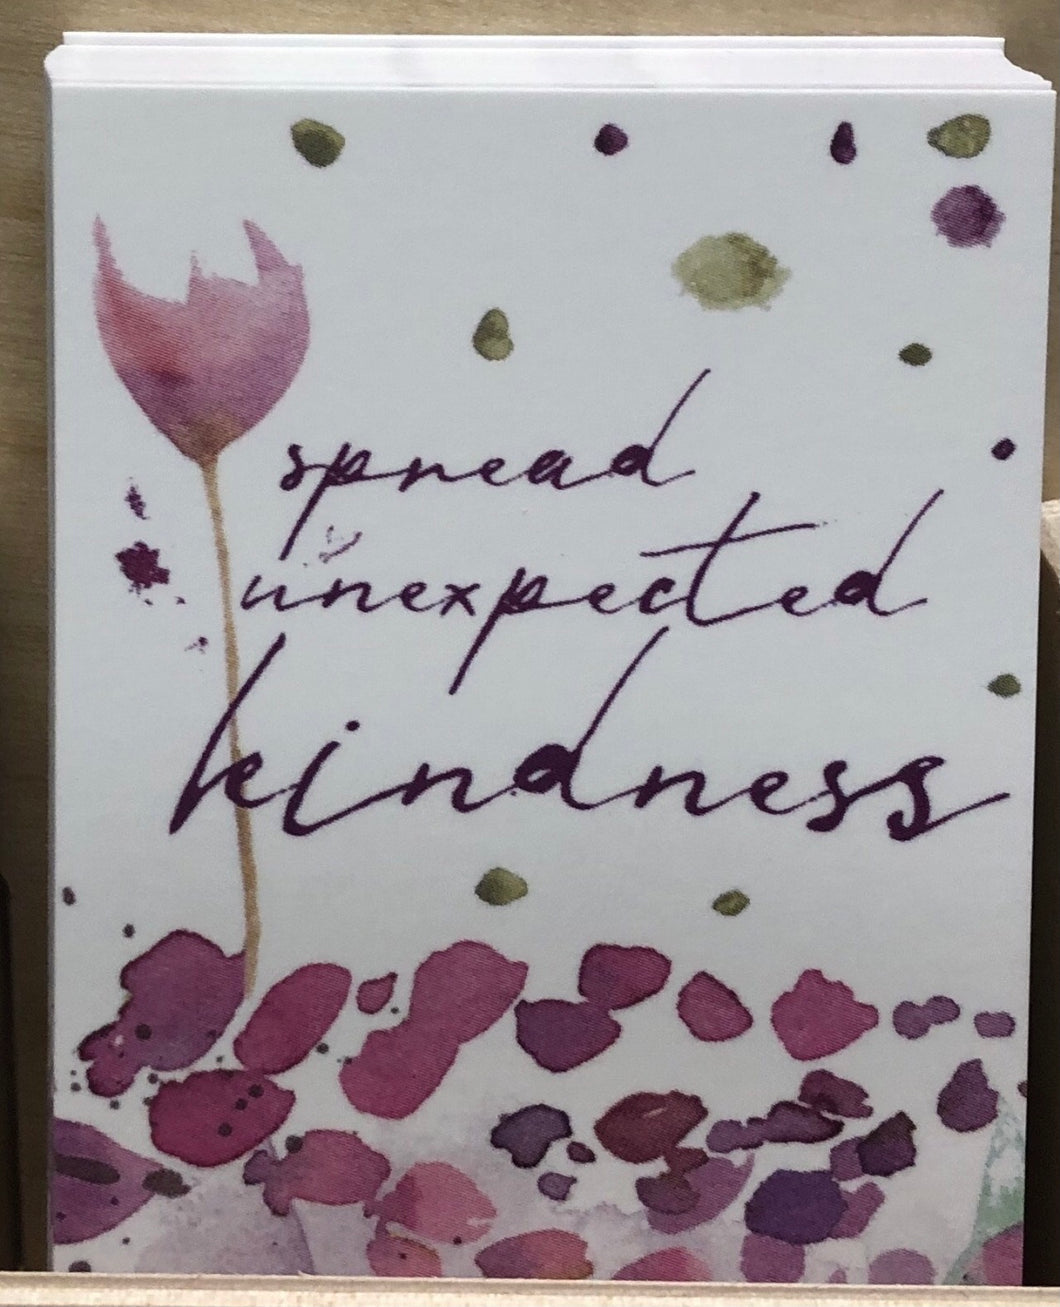 Prayer Life Share Card - Spread Unexpected Kindness